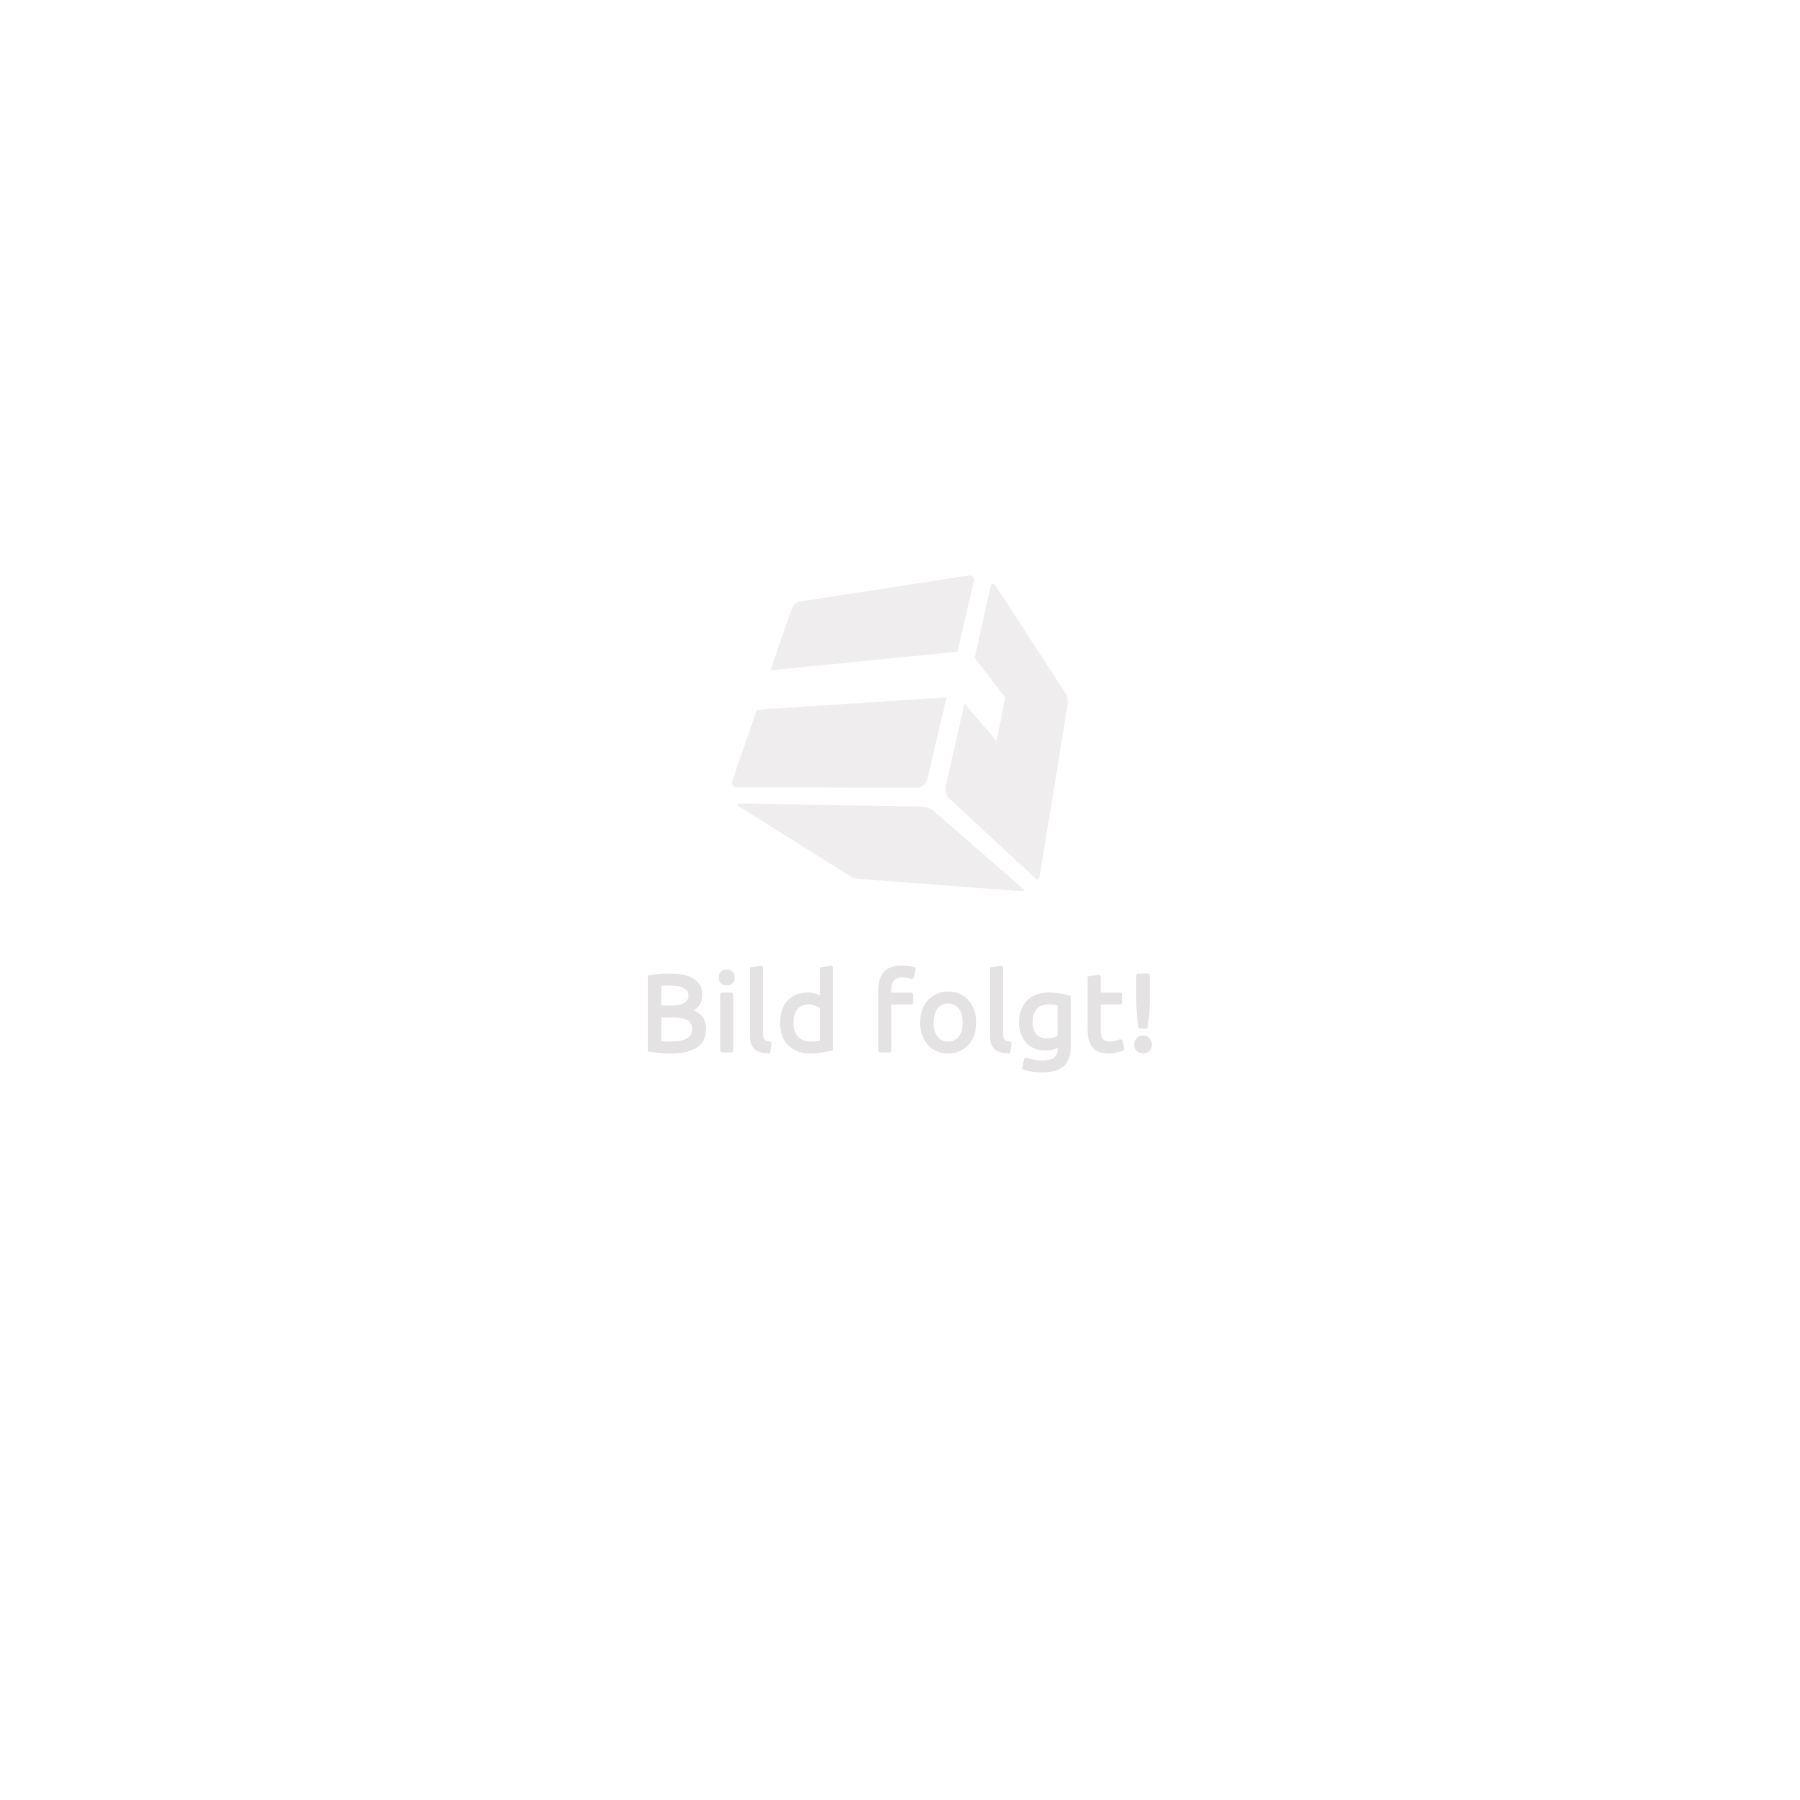 Soporte de pared para monitores de 32-65″ (81-165cm) inclinable y orientable